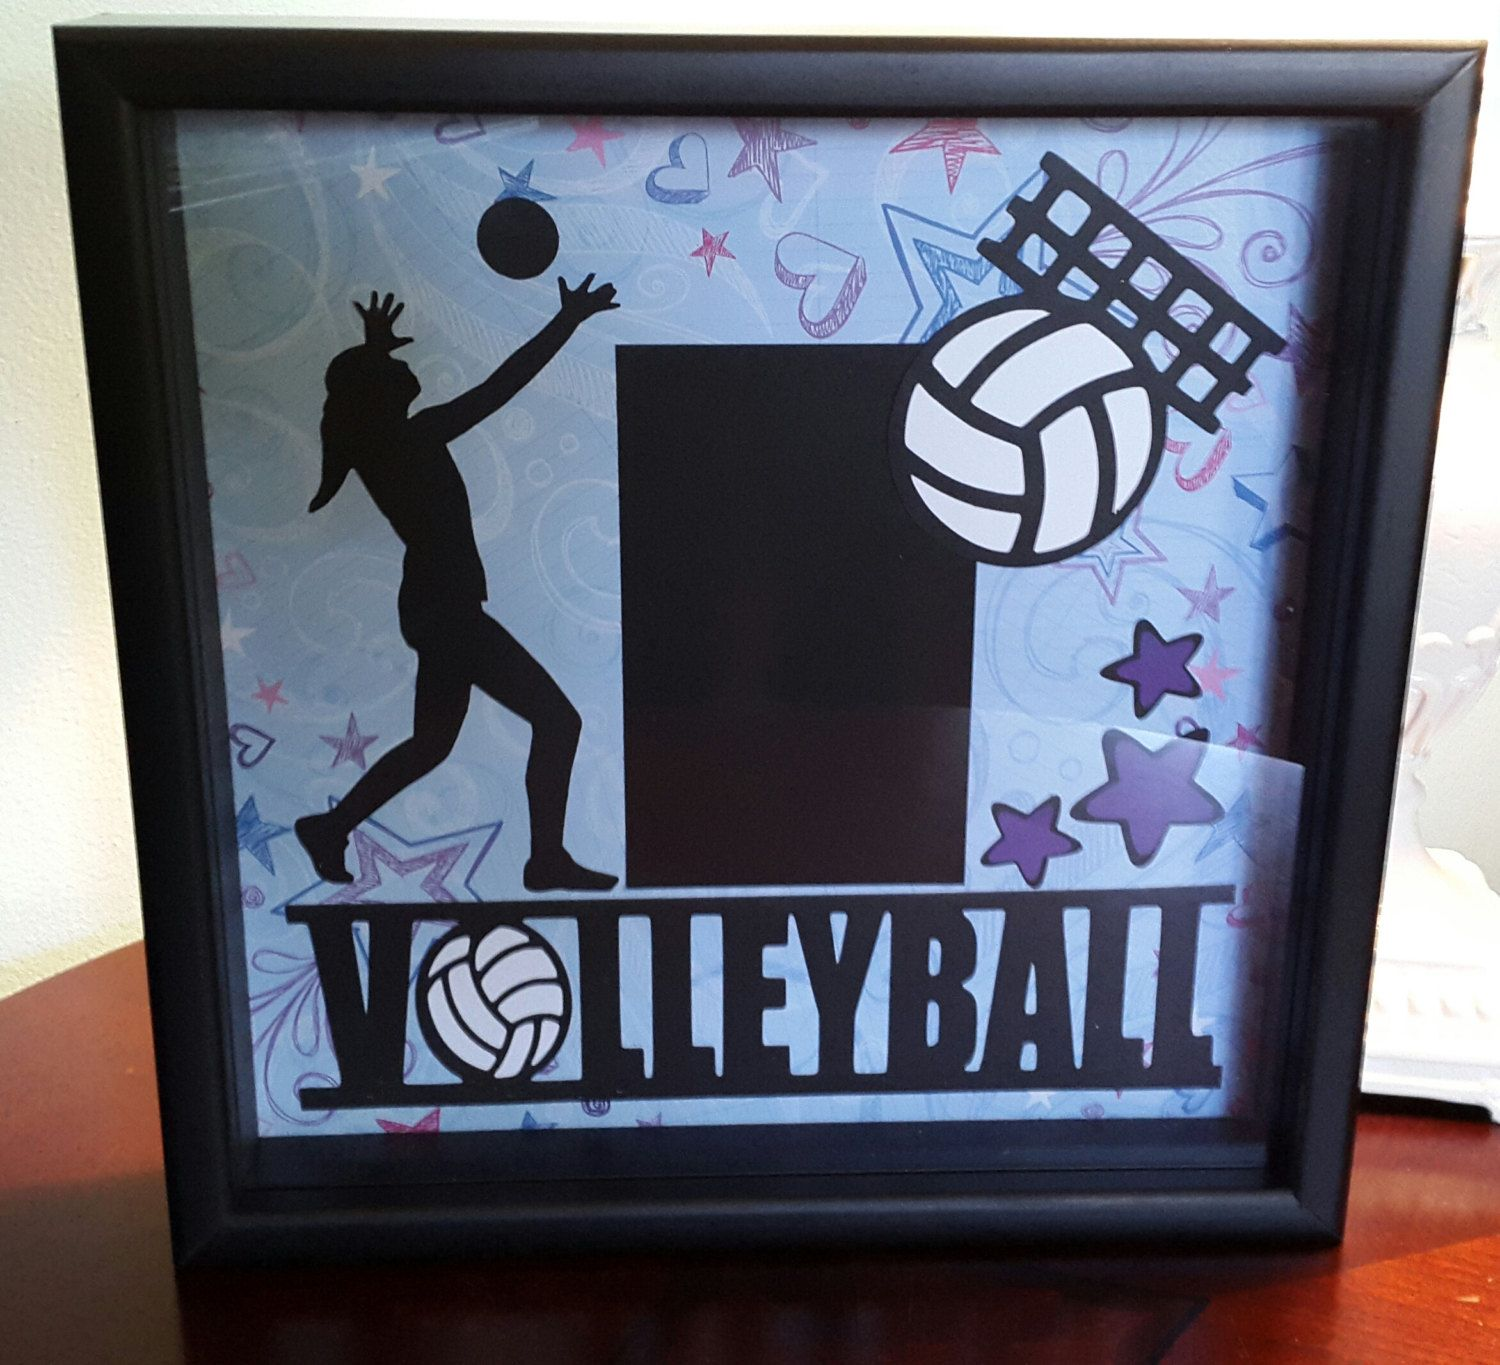 60df618f018 12x12 shadow box frame volleyball by ScrapbookEscape on Etsy. 12x12 shadow  box frame volleyball by ScrapbookEscape on Etsy Shadow Box Frames